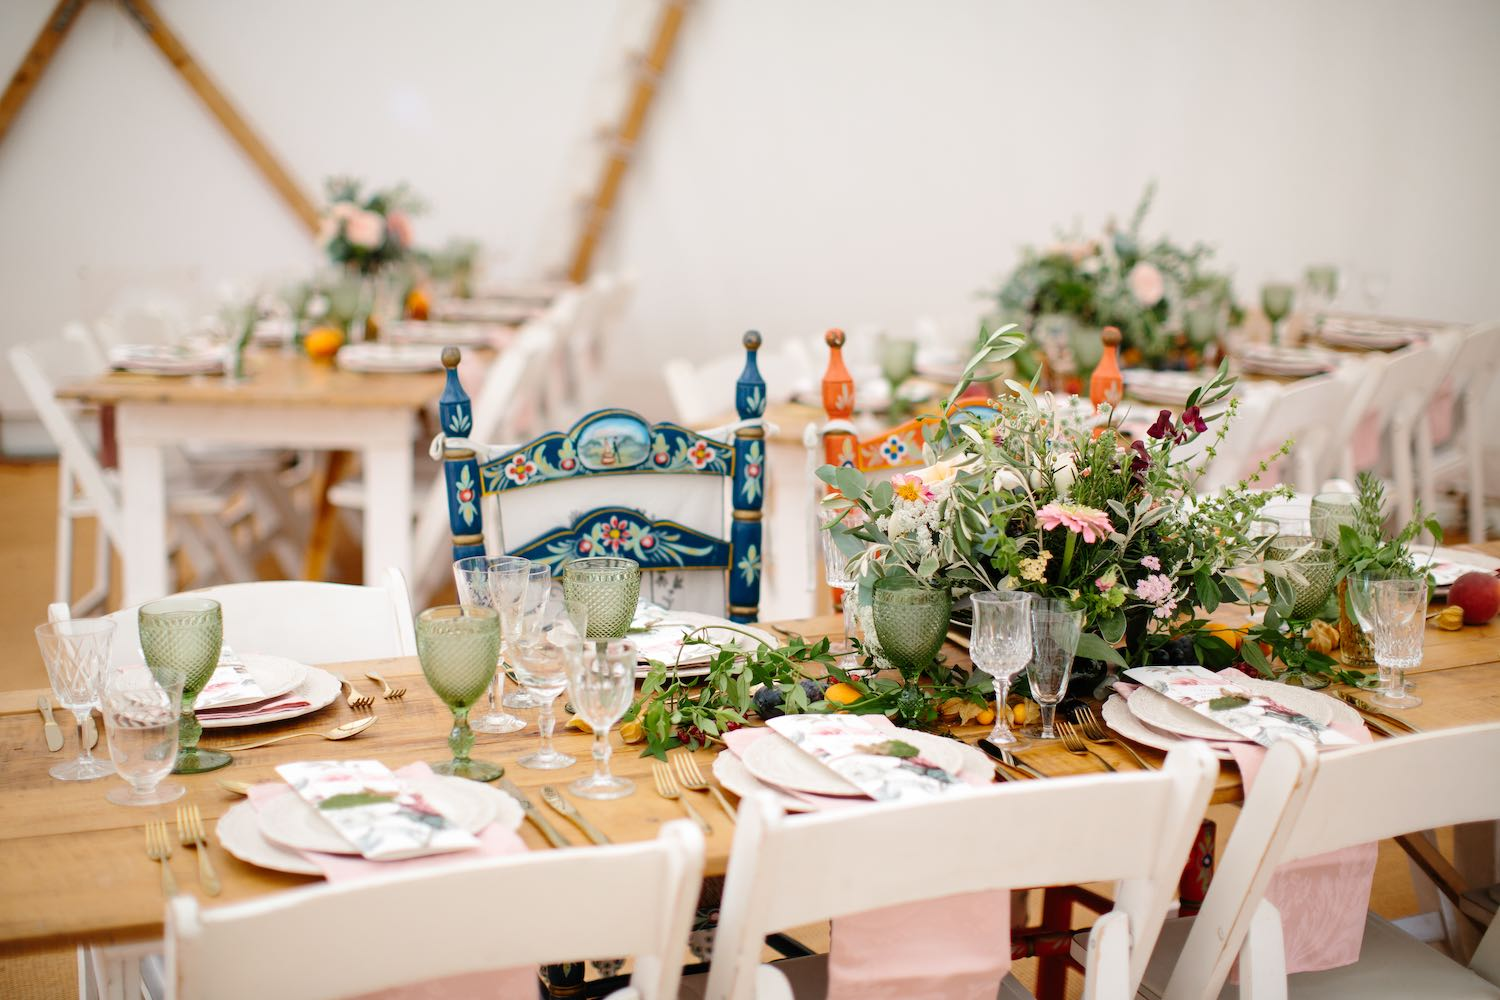 Richly laden wedding tables with flowers and fruit